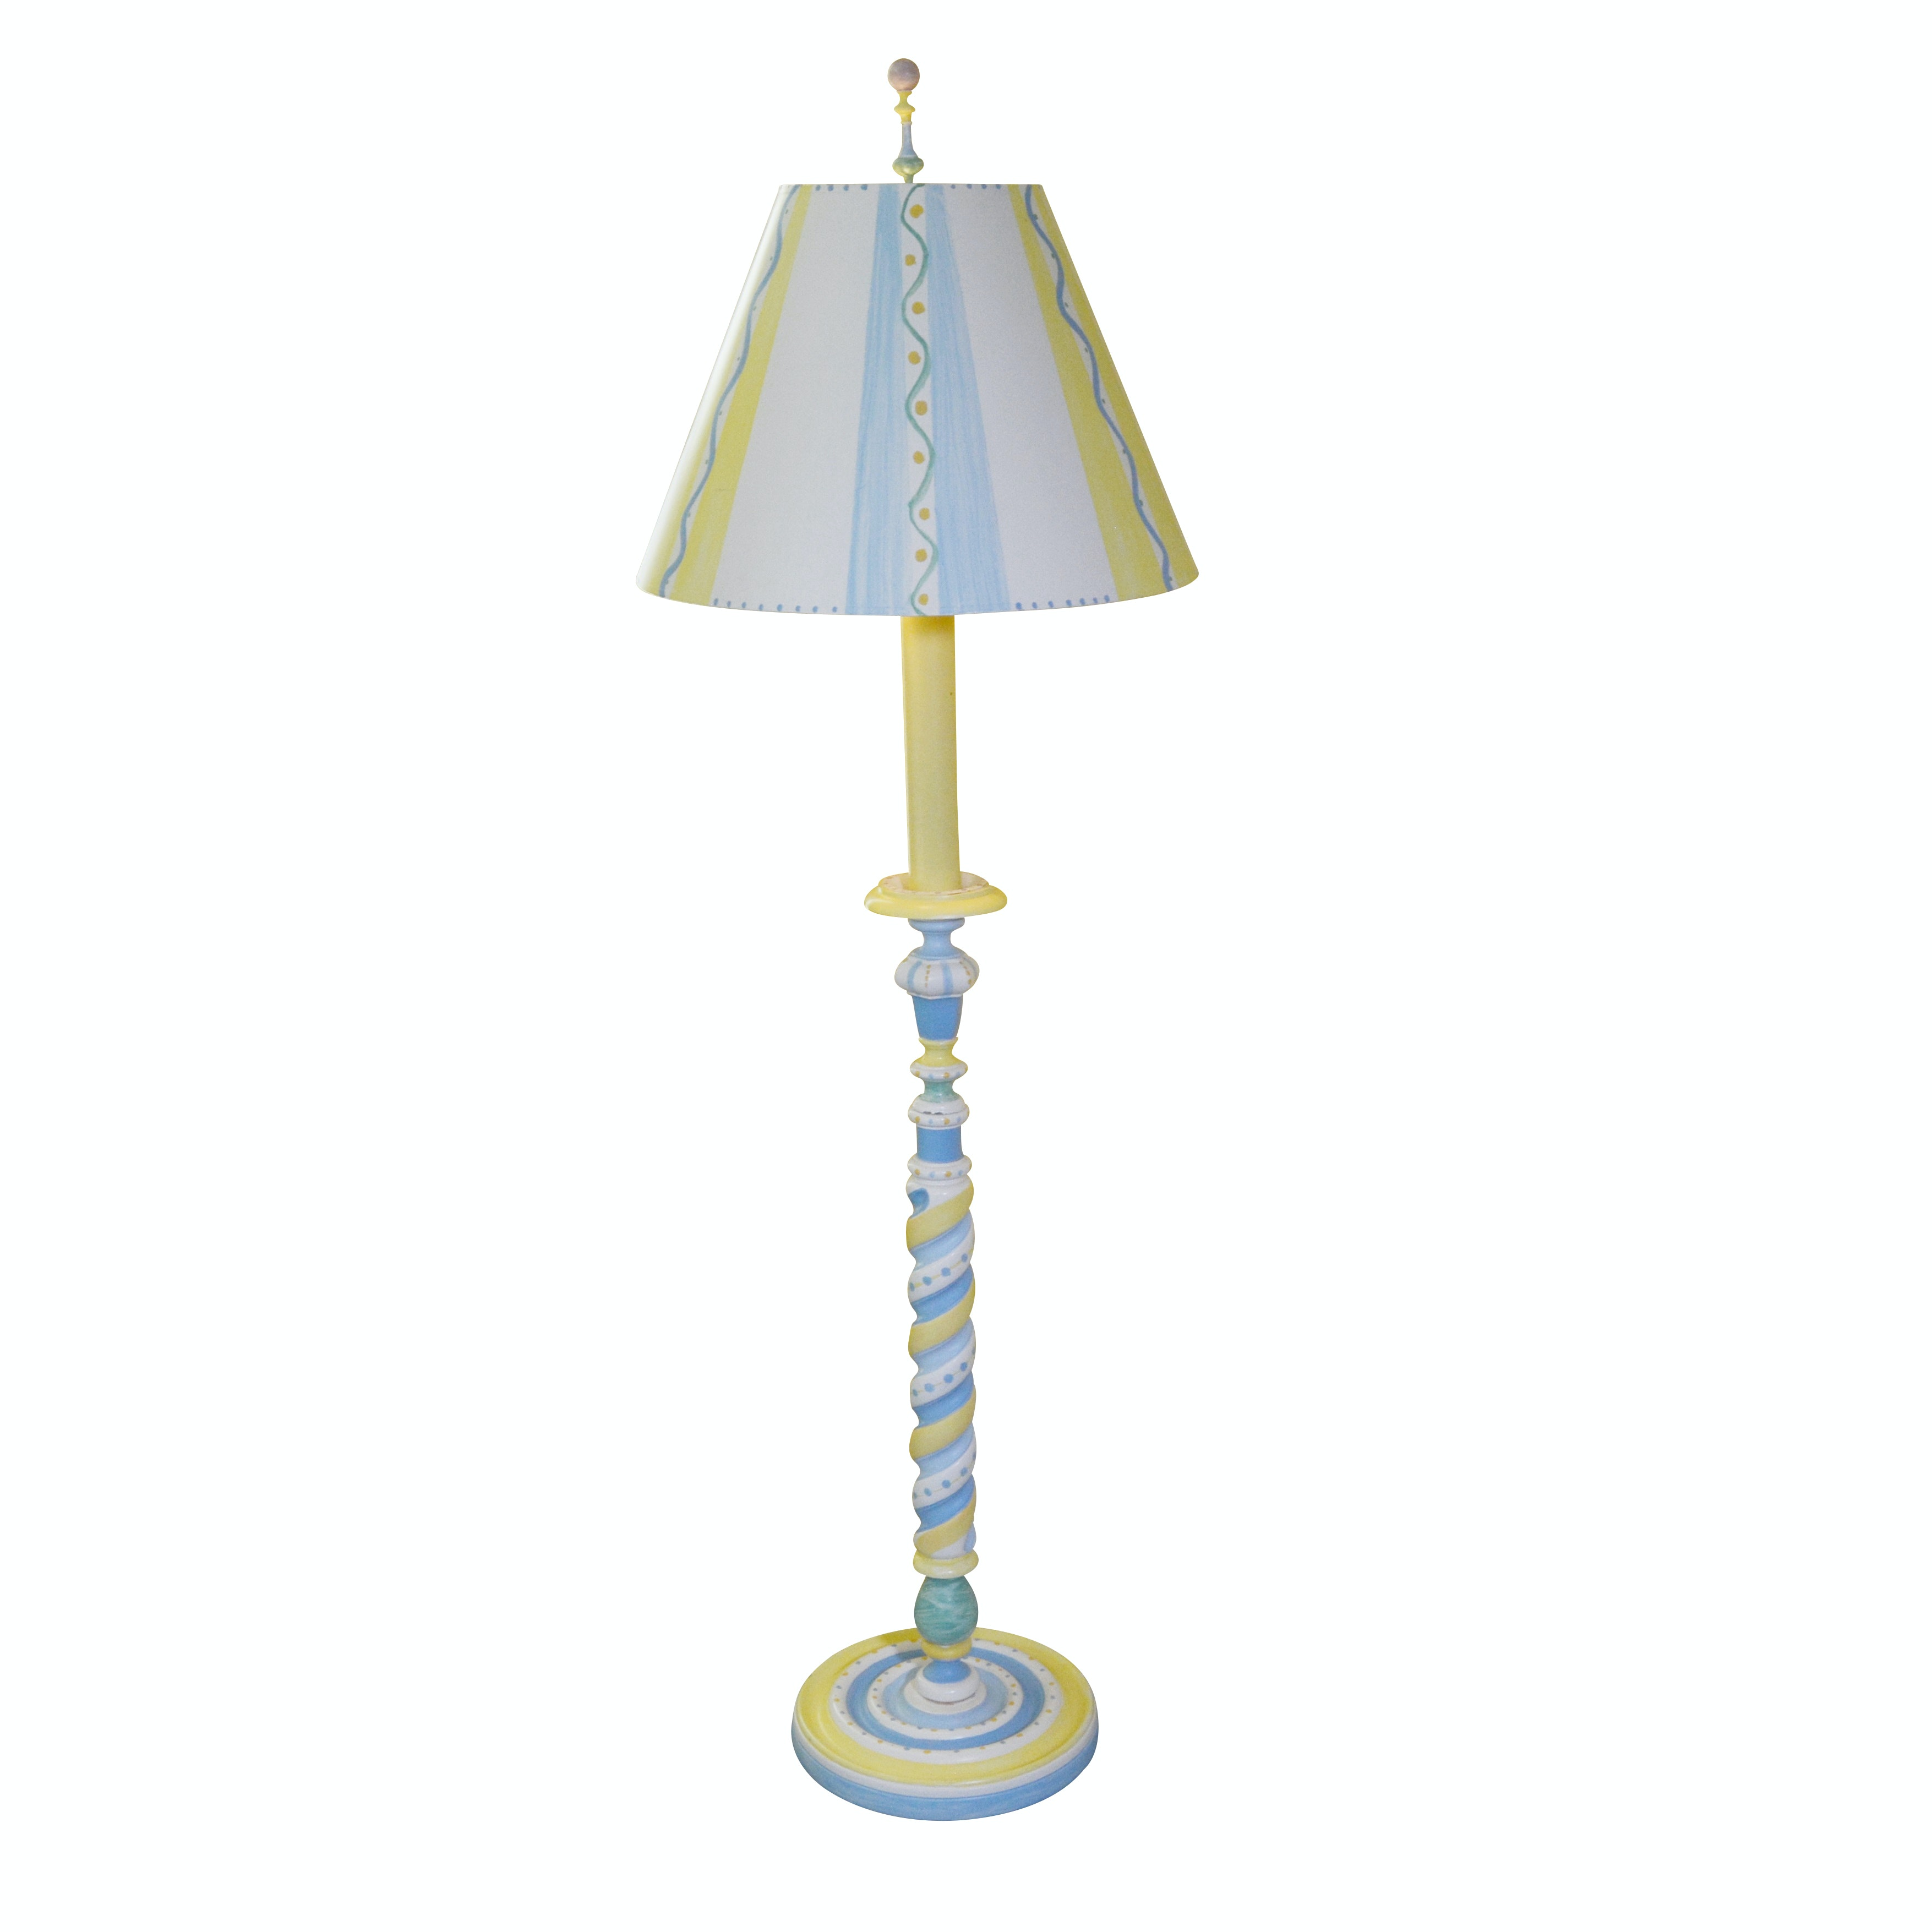 Painted Turned Spindle Floor Lamp with Matching Shade